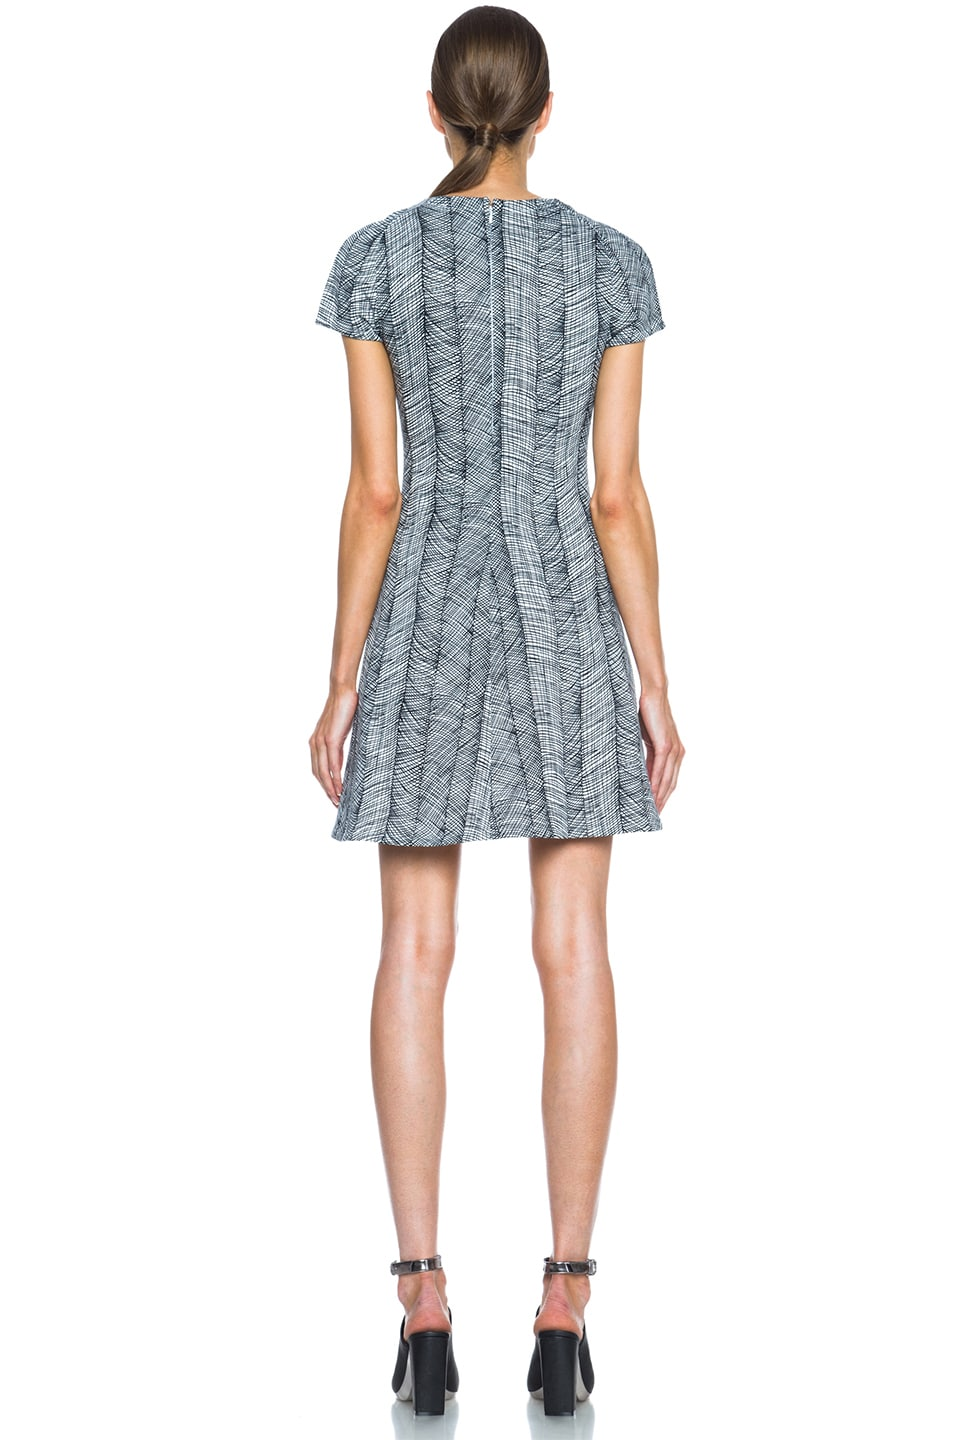 0e9a291ff0f83 Image 4 of Kenzo Graphic Curtain Knit Dress in Optic White